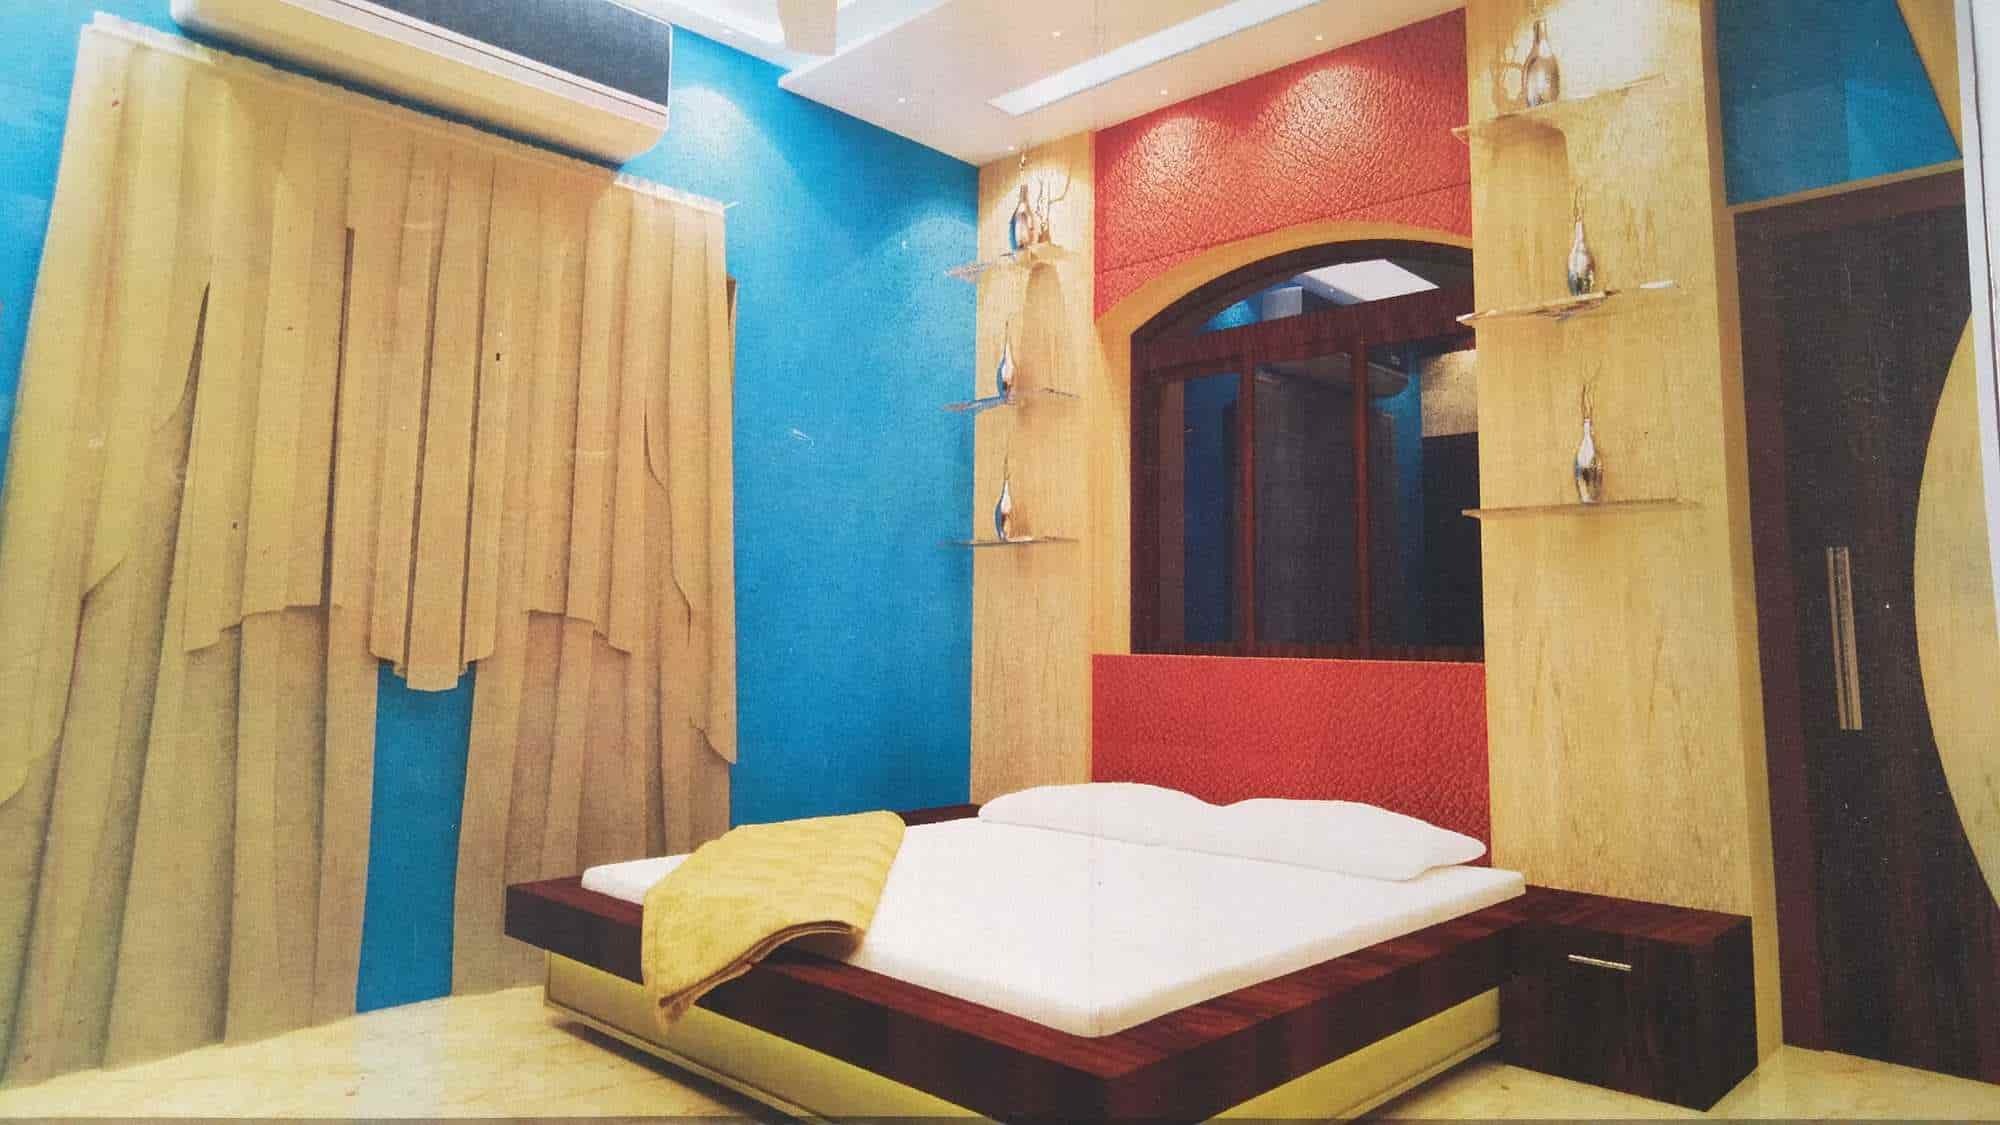 Home Design Group Photos, Deoghar College, Deoghar Jharkhand Pictures & Images